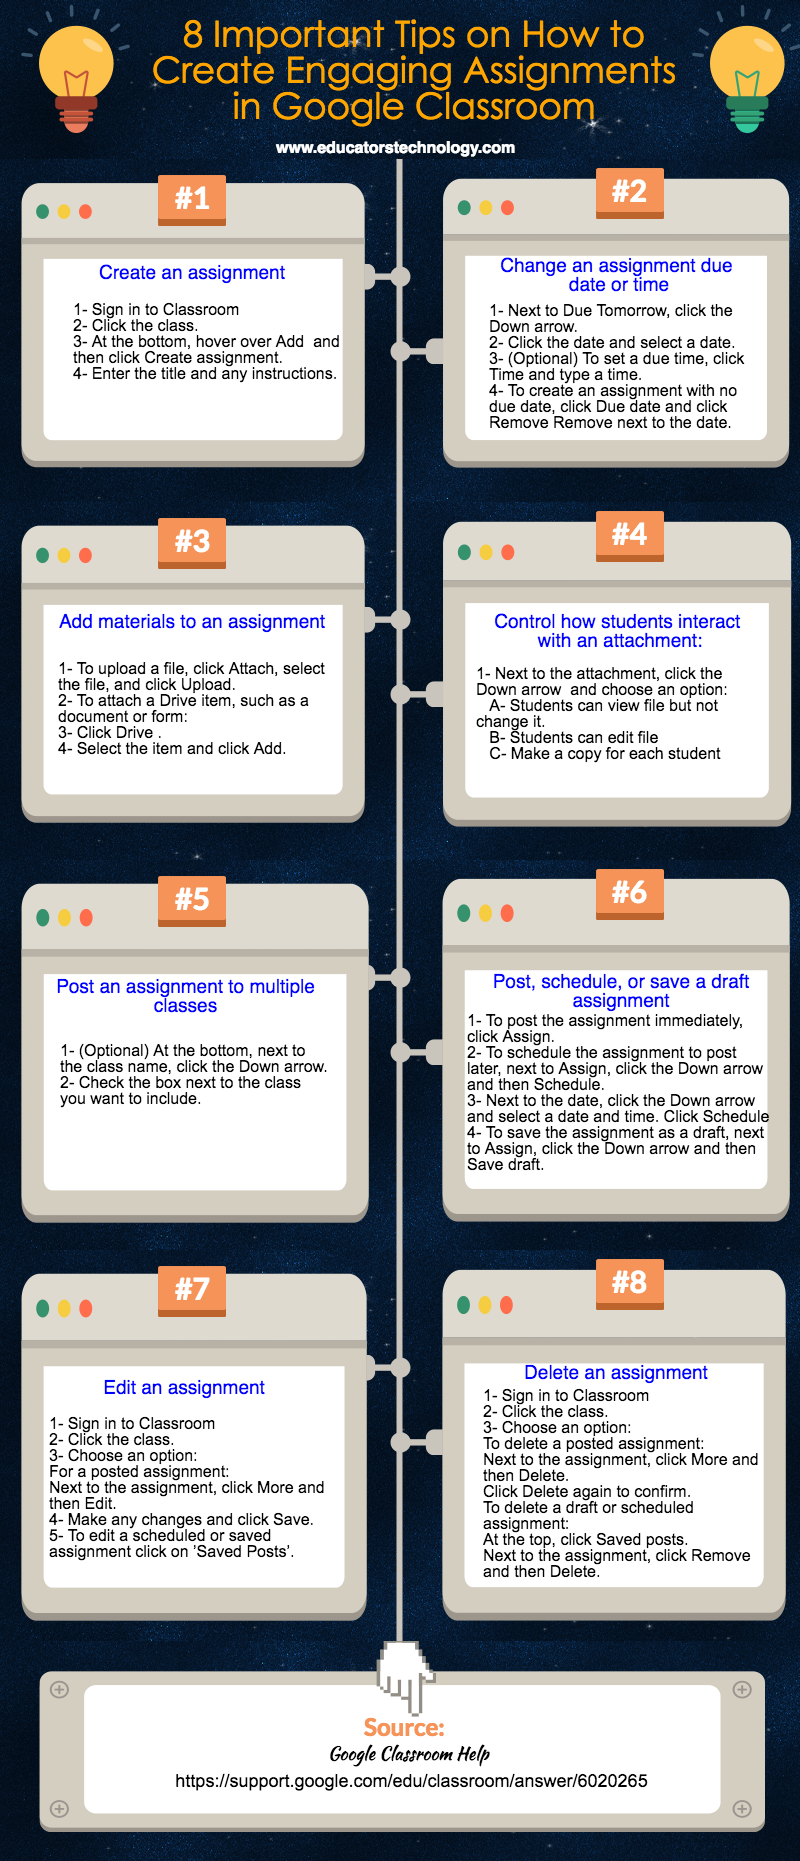 8 Important Tips on How to Create Engaging Assignments in Google Classroom